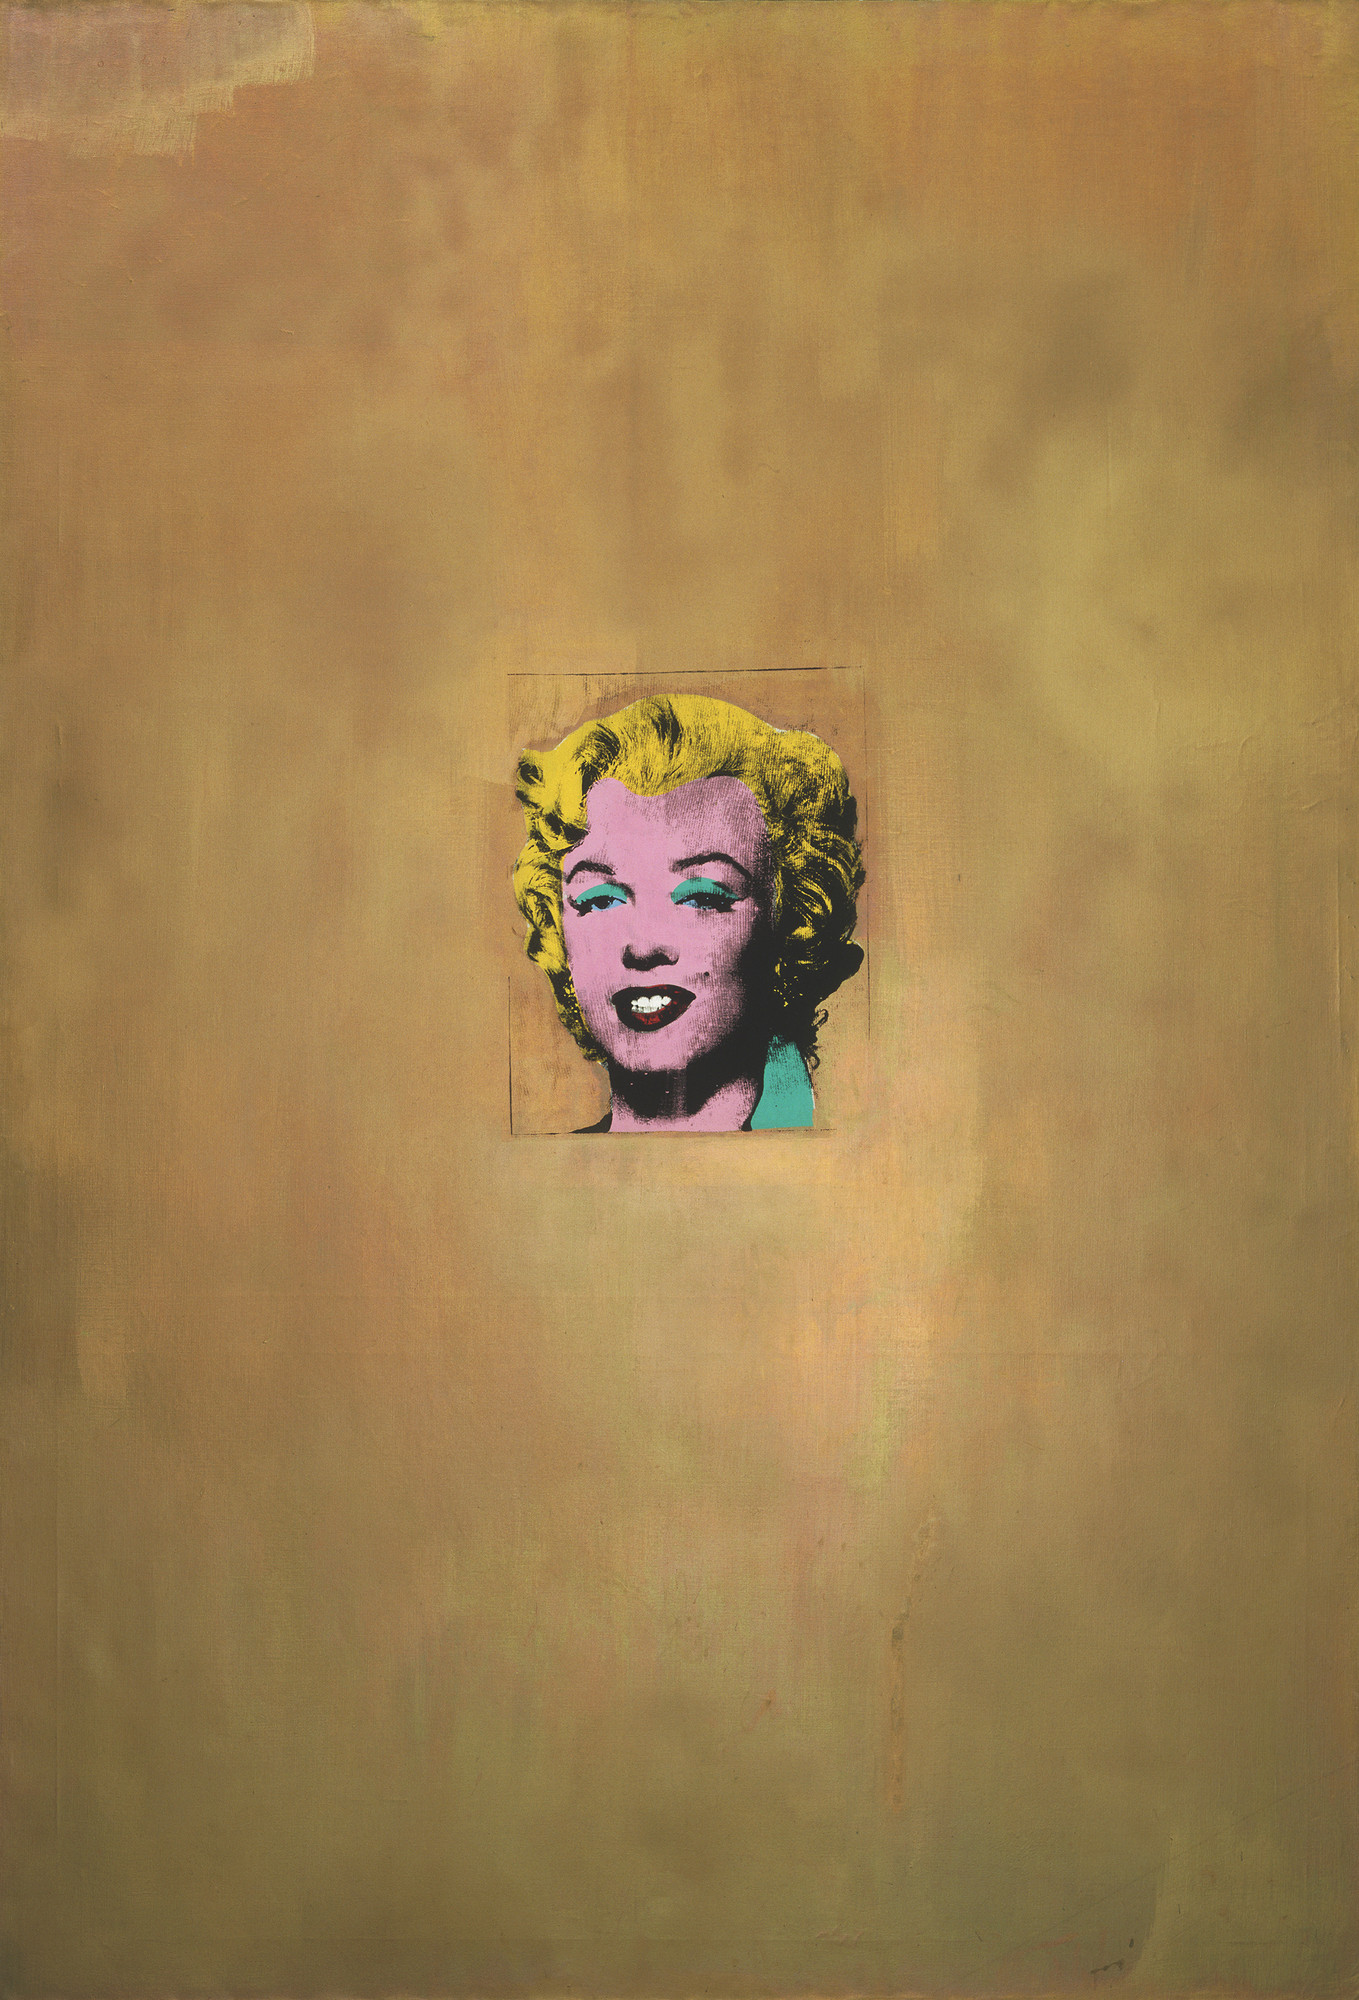 "Andy Warhol. Gold Marilyn Monroe. 1962. Silkscreen ink on synthetic polymer paint on canvas, 6' 11 1⁄4"" x 57"" (211.4 x 144.7 cm). Gift of Philip Johnson. © 2010 Andy Warhol Foundation for the Visual Arts / Artists Rights Society (ARS), New York"